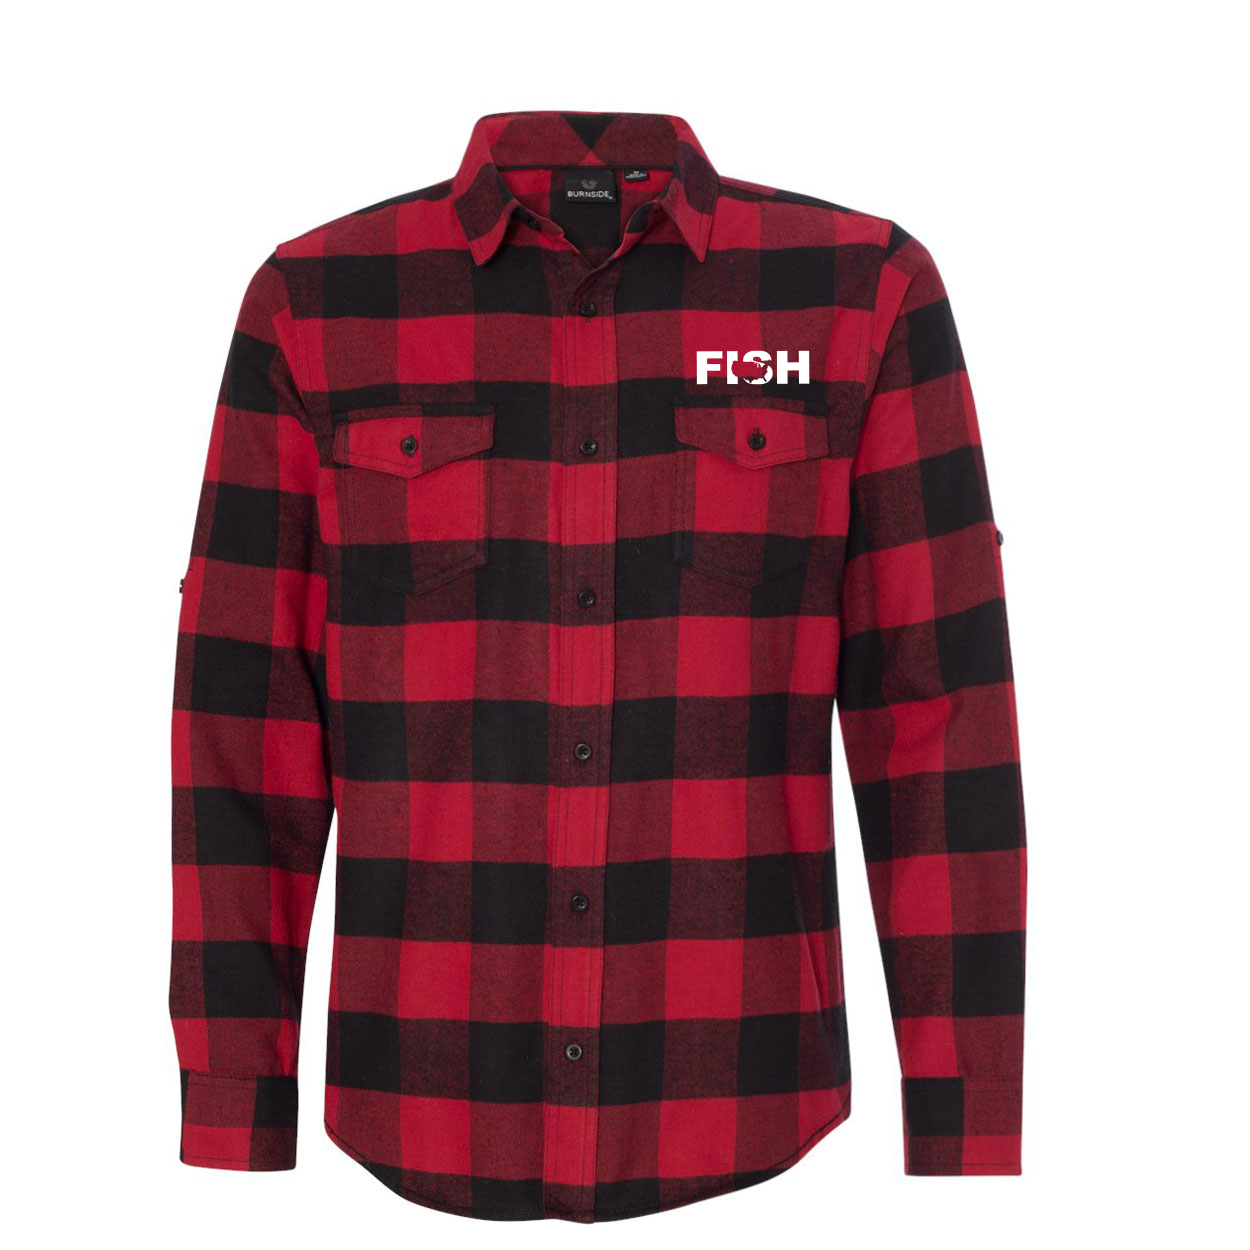 Fish United States Classic Unisex Long Sleeve Flannel Shirt Red/Black Buffalo (White Logo)